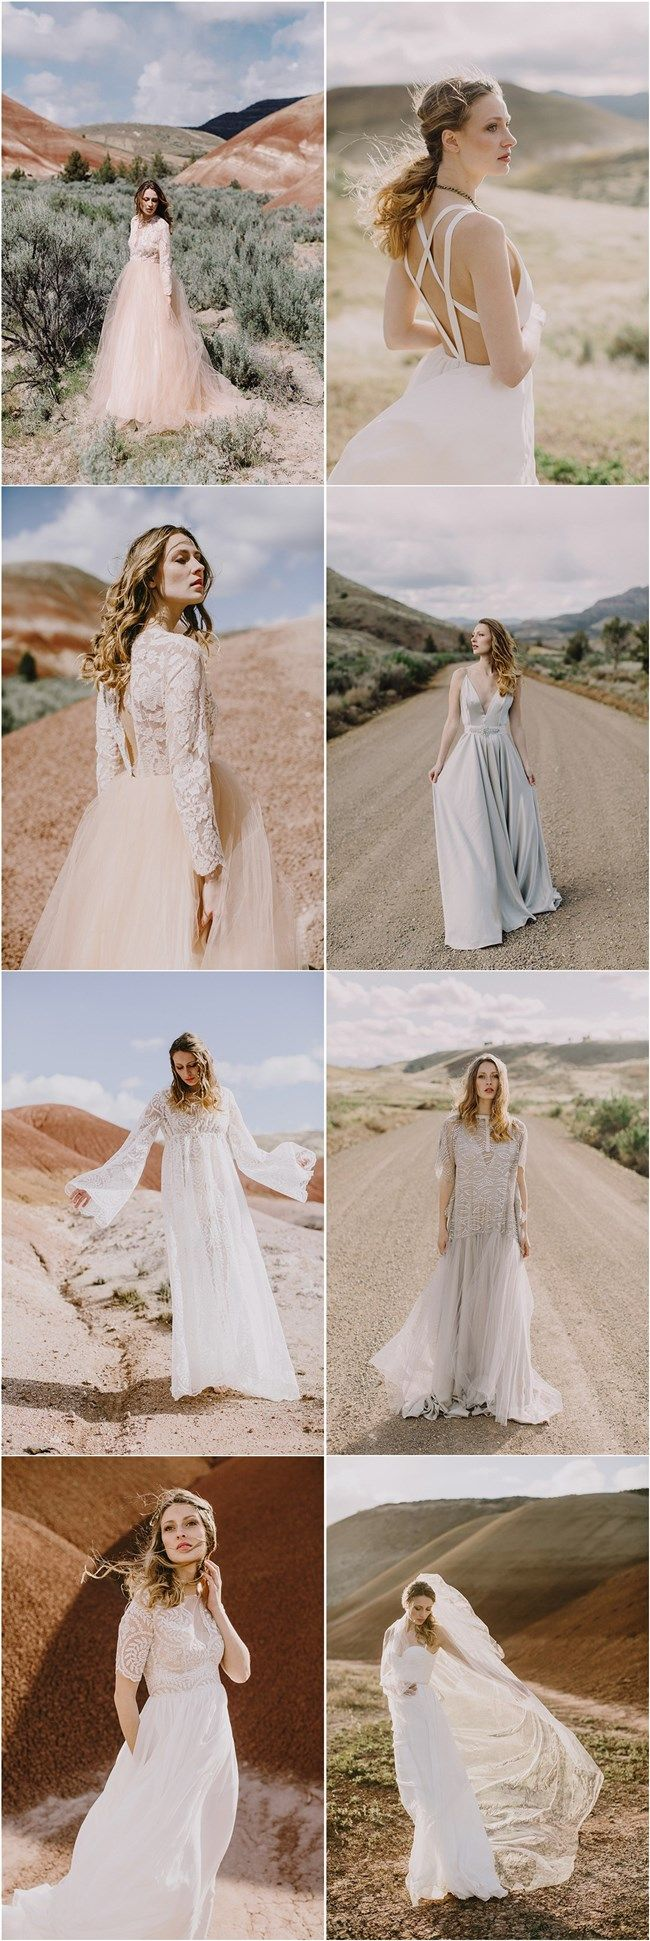 Wedding Dresses Spanish Fork Utah : Elizabeth dye wedding dresses collection